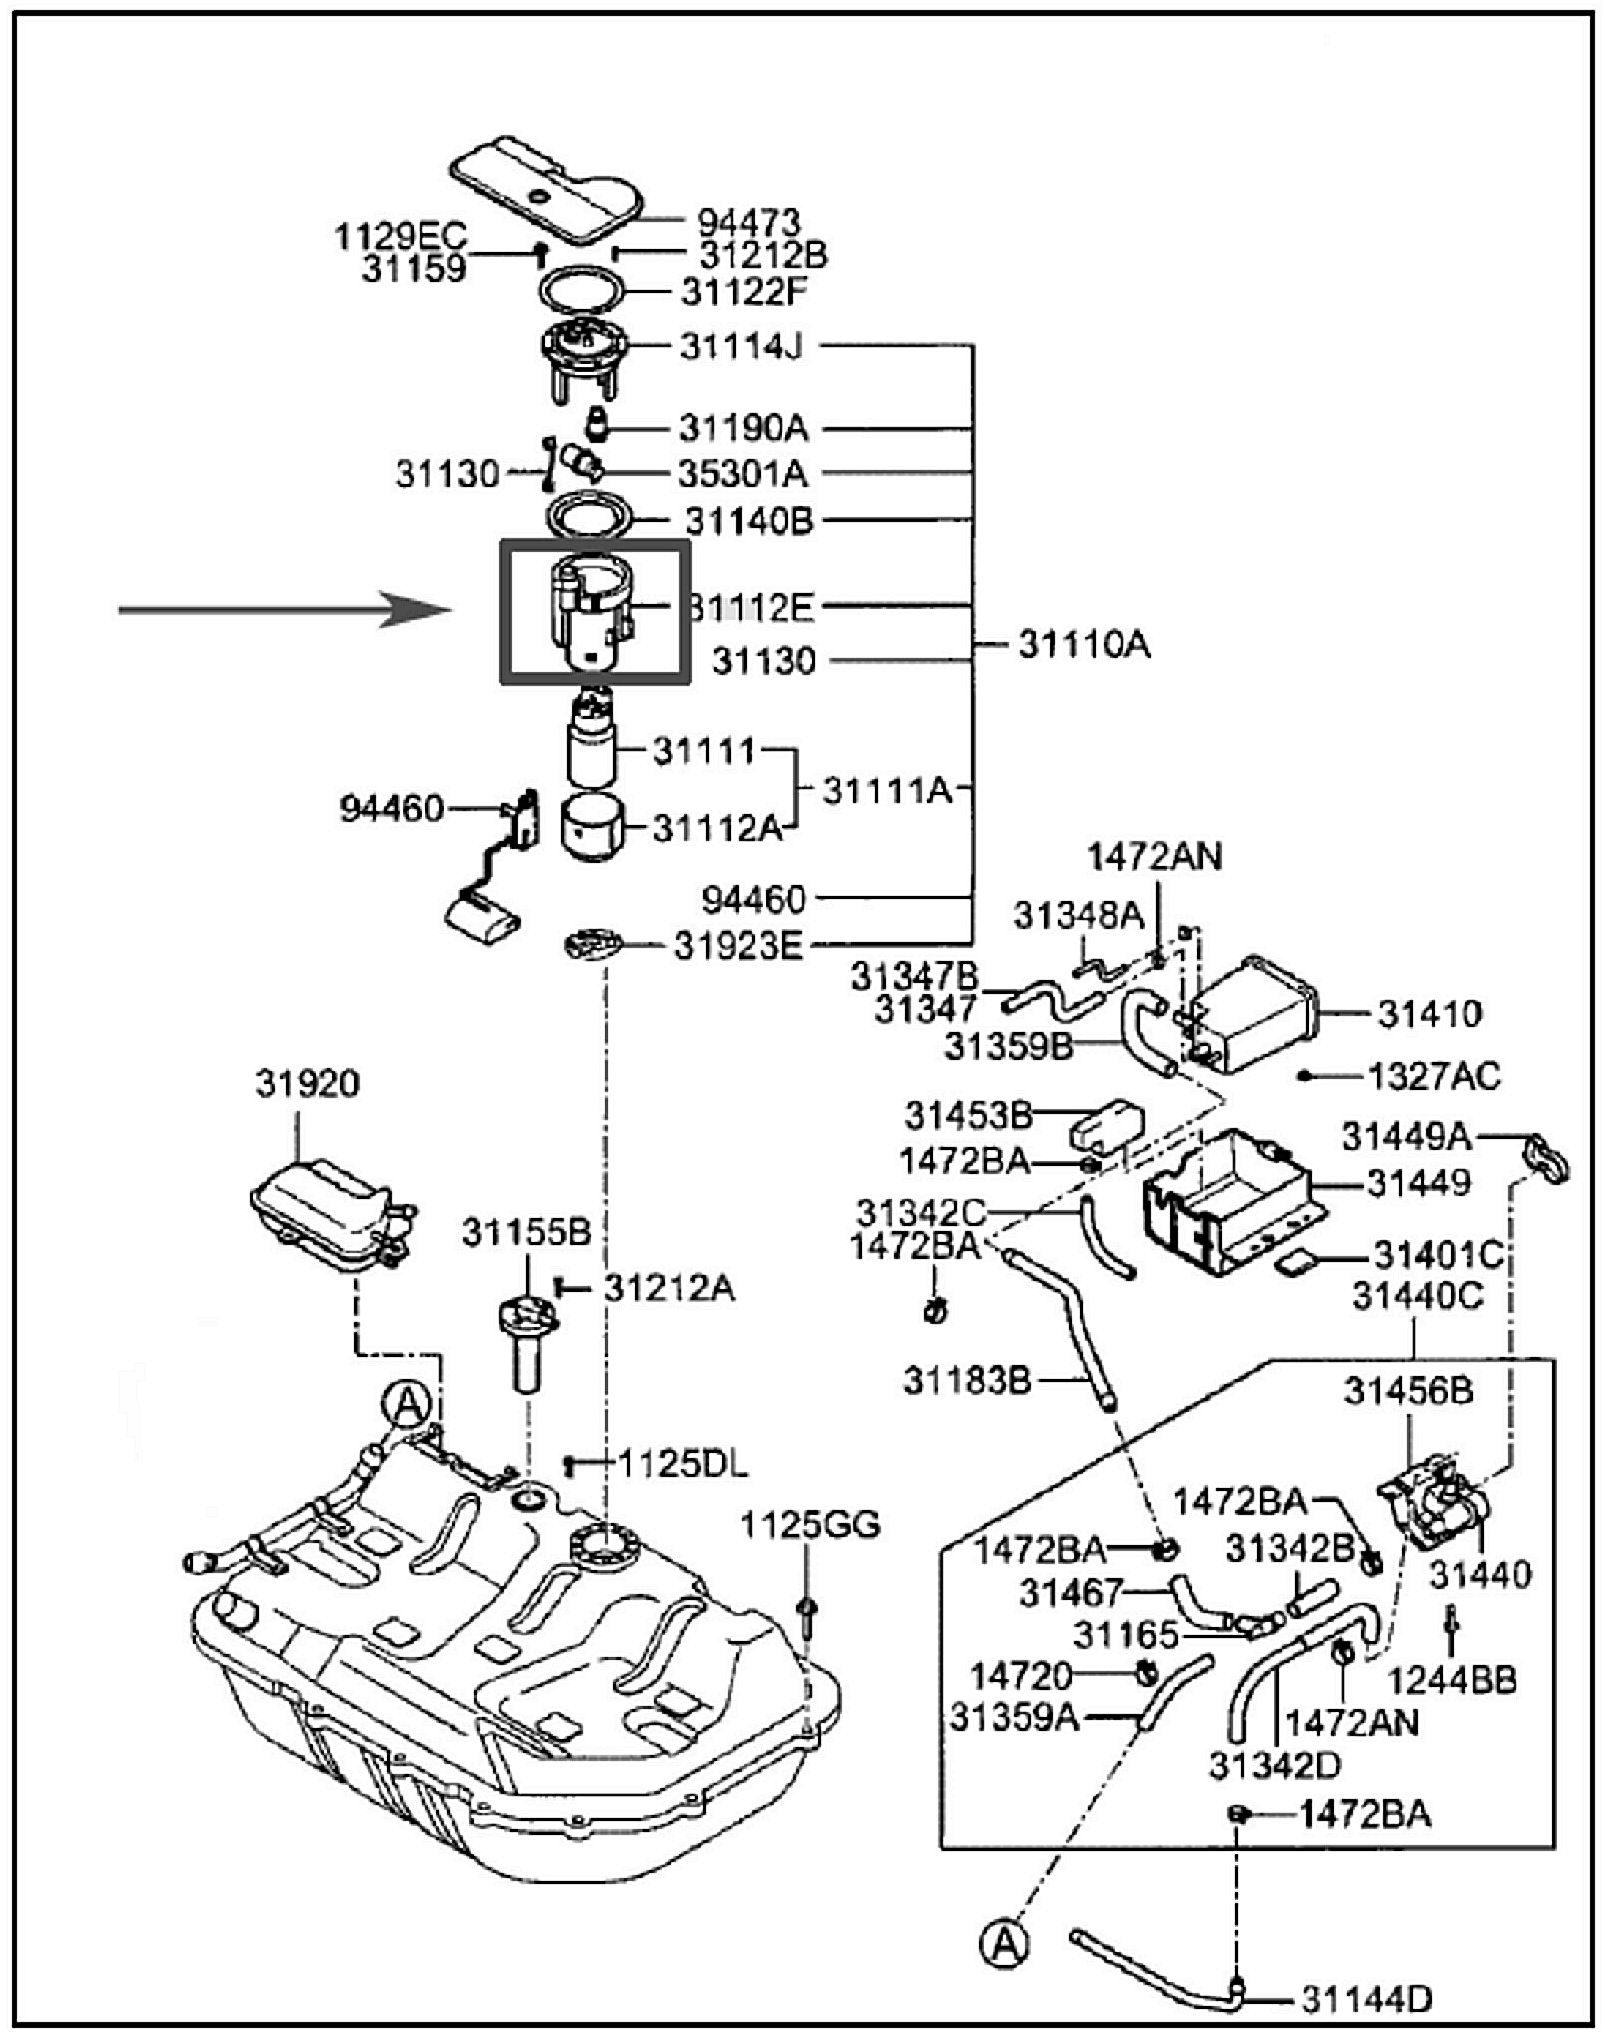 2000 hyundai elantra fuel injection wiring diagram  2000